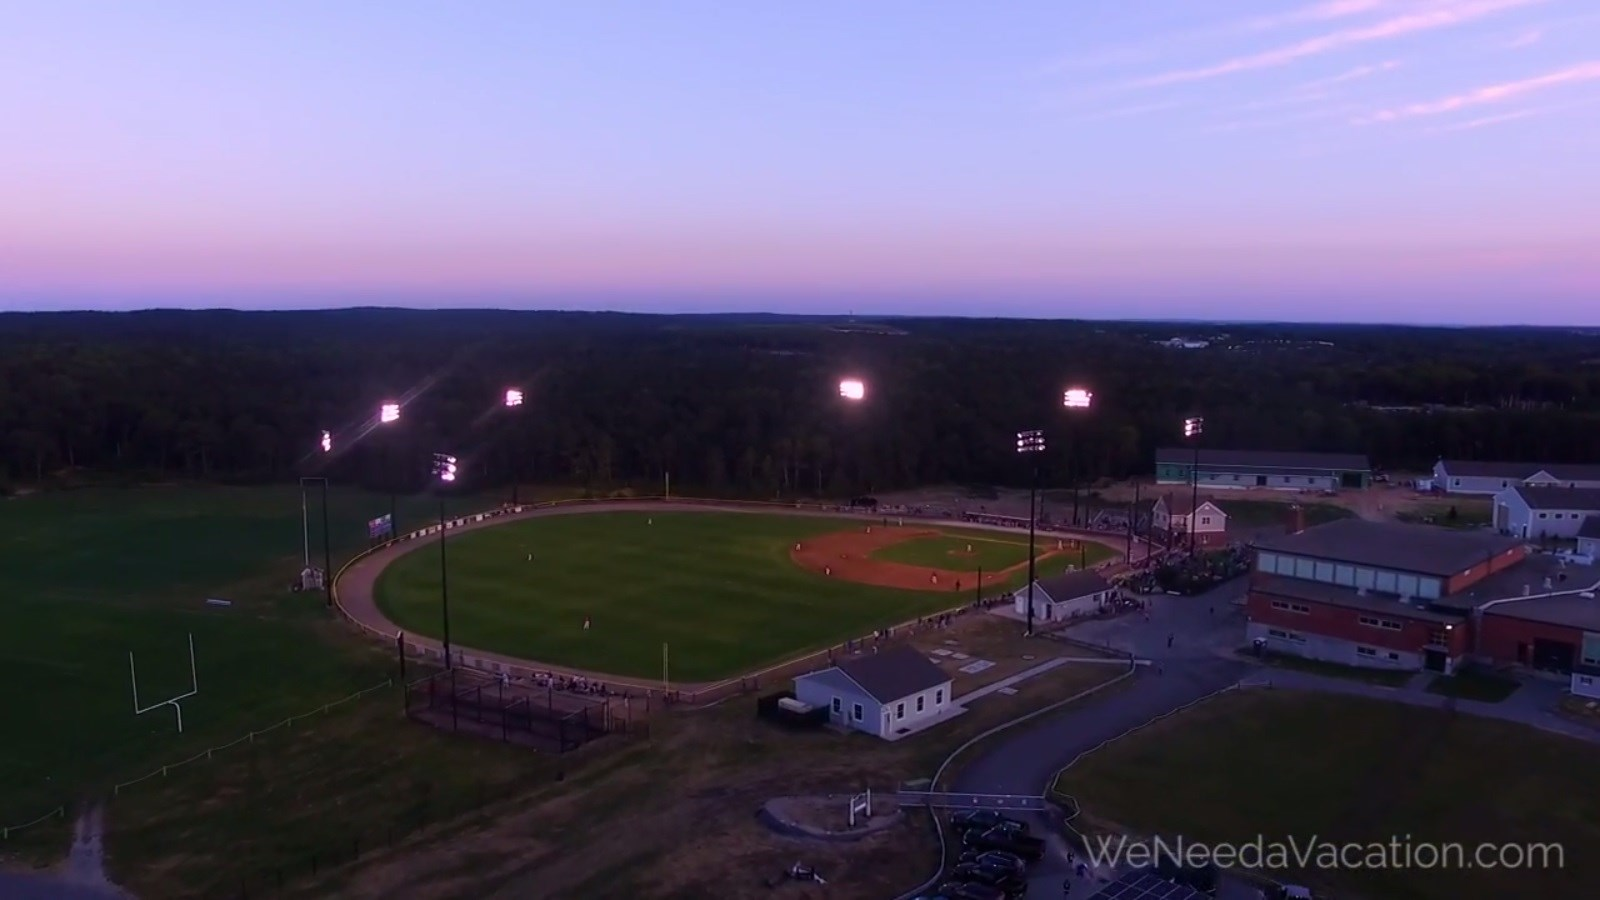 One thing for sure about Cape Cod, Martha's Vineyard, and Nantucket: It's a region steeped in tradition. But for many of us, one tradition that stands out from the rest is the Cape Cod Baseball League. Watch as some of the players from the Cape Cod Baseball League recite James Earl Jones'